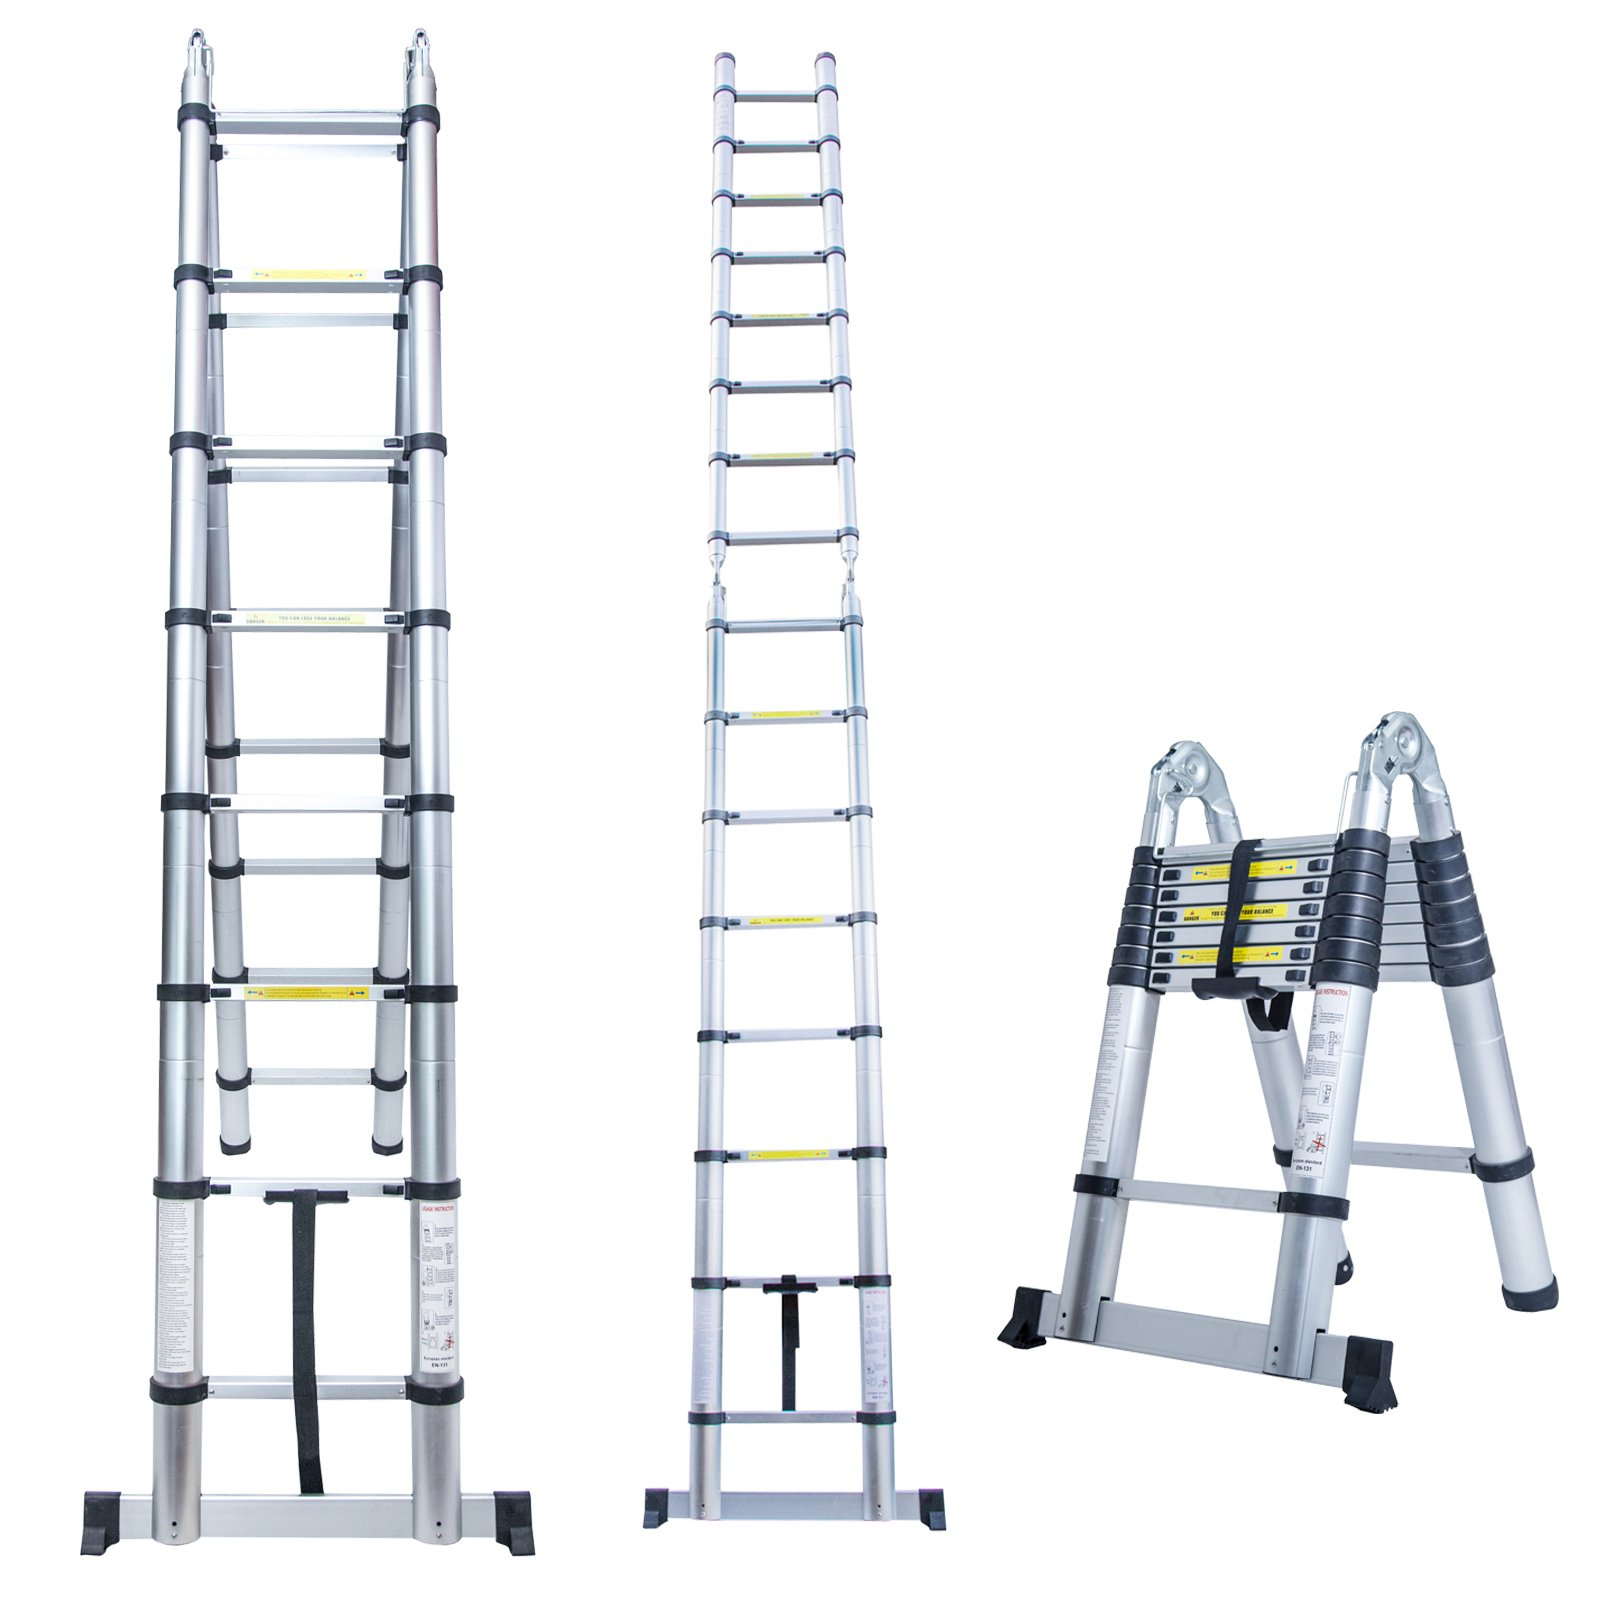 Idealchoiceproduct 16.5FT Extension Folding Telescopic Aluminium A Frame Shape Ladder Steps by Idealchoiceproduct (Image #1)